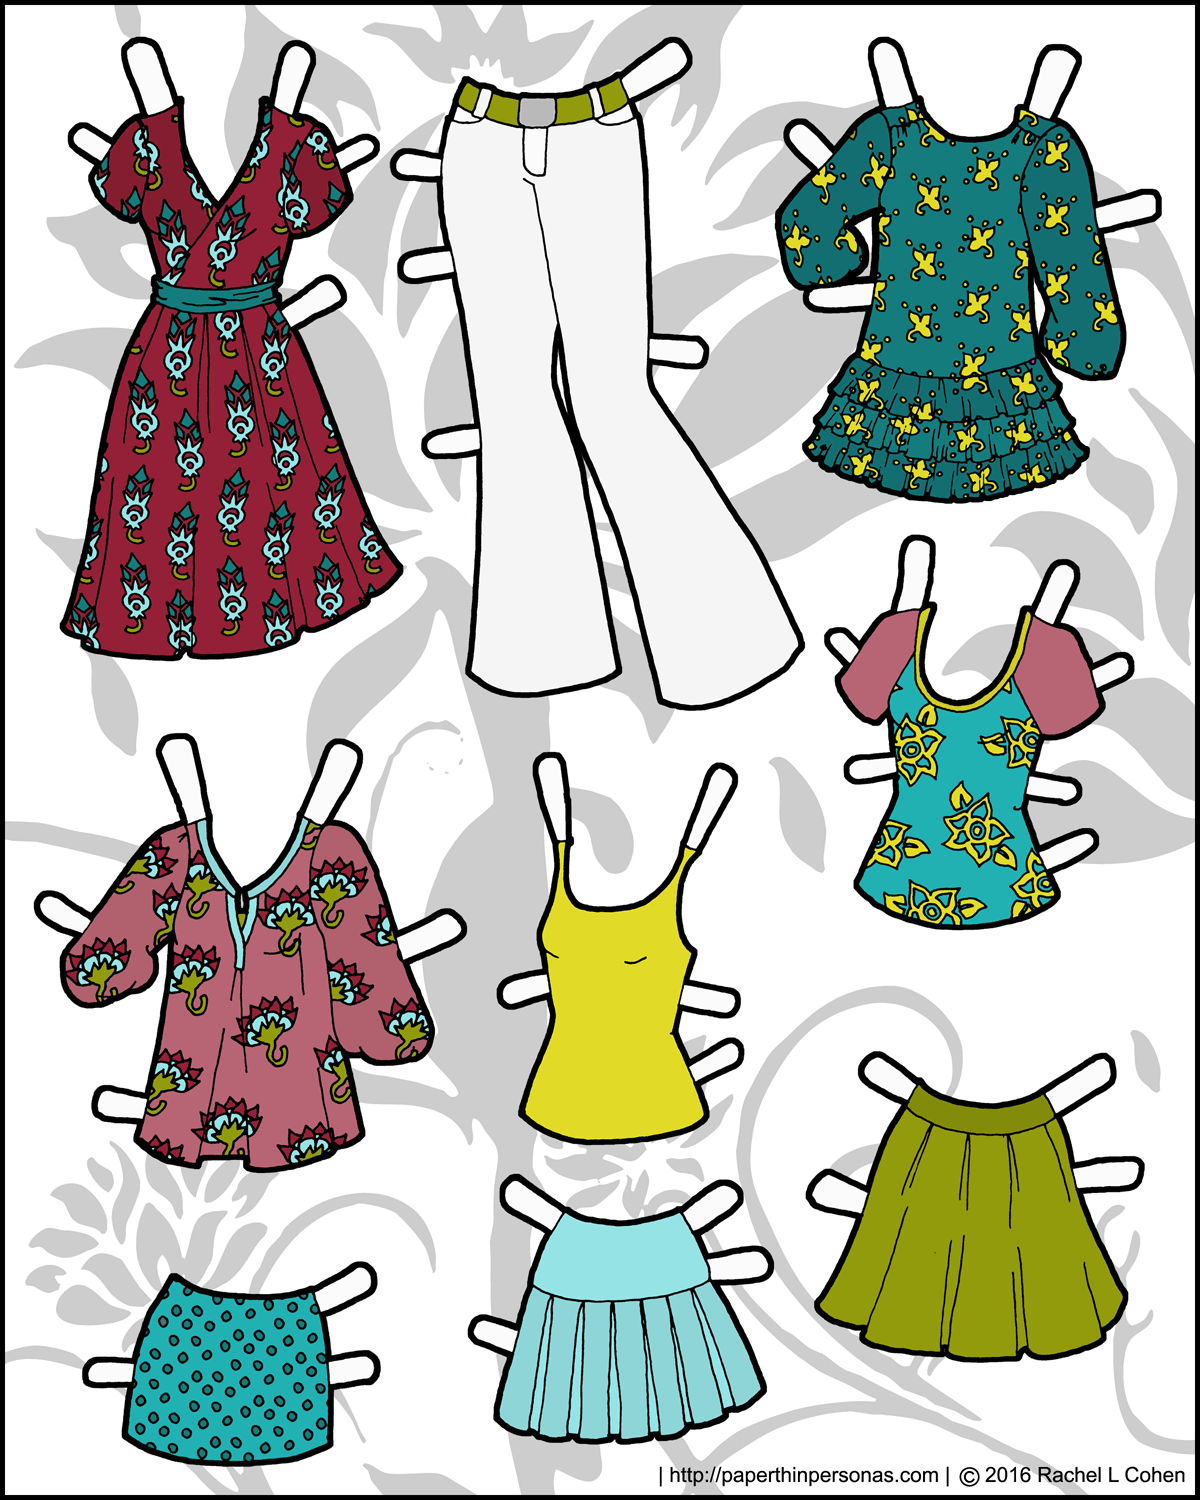 Soft image regarding paper doll clothes printable